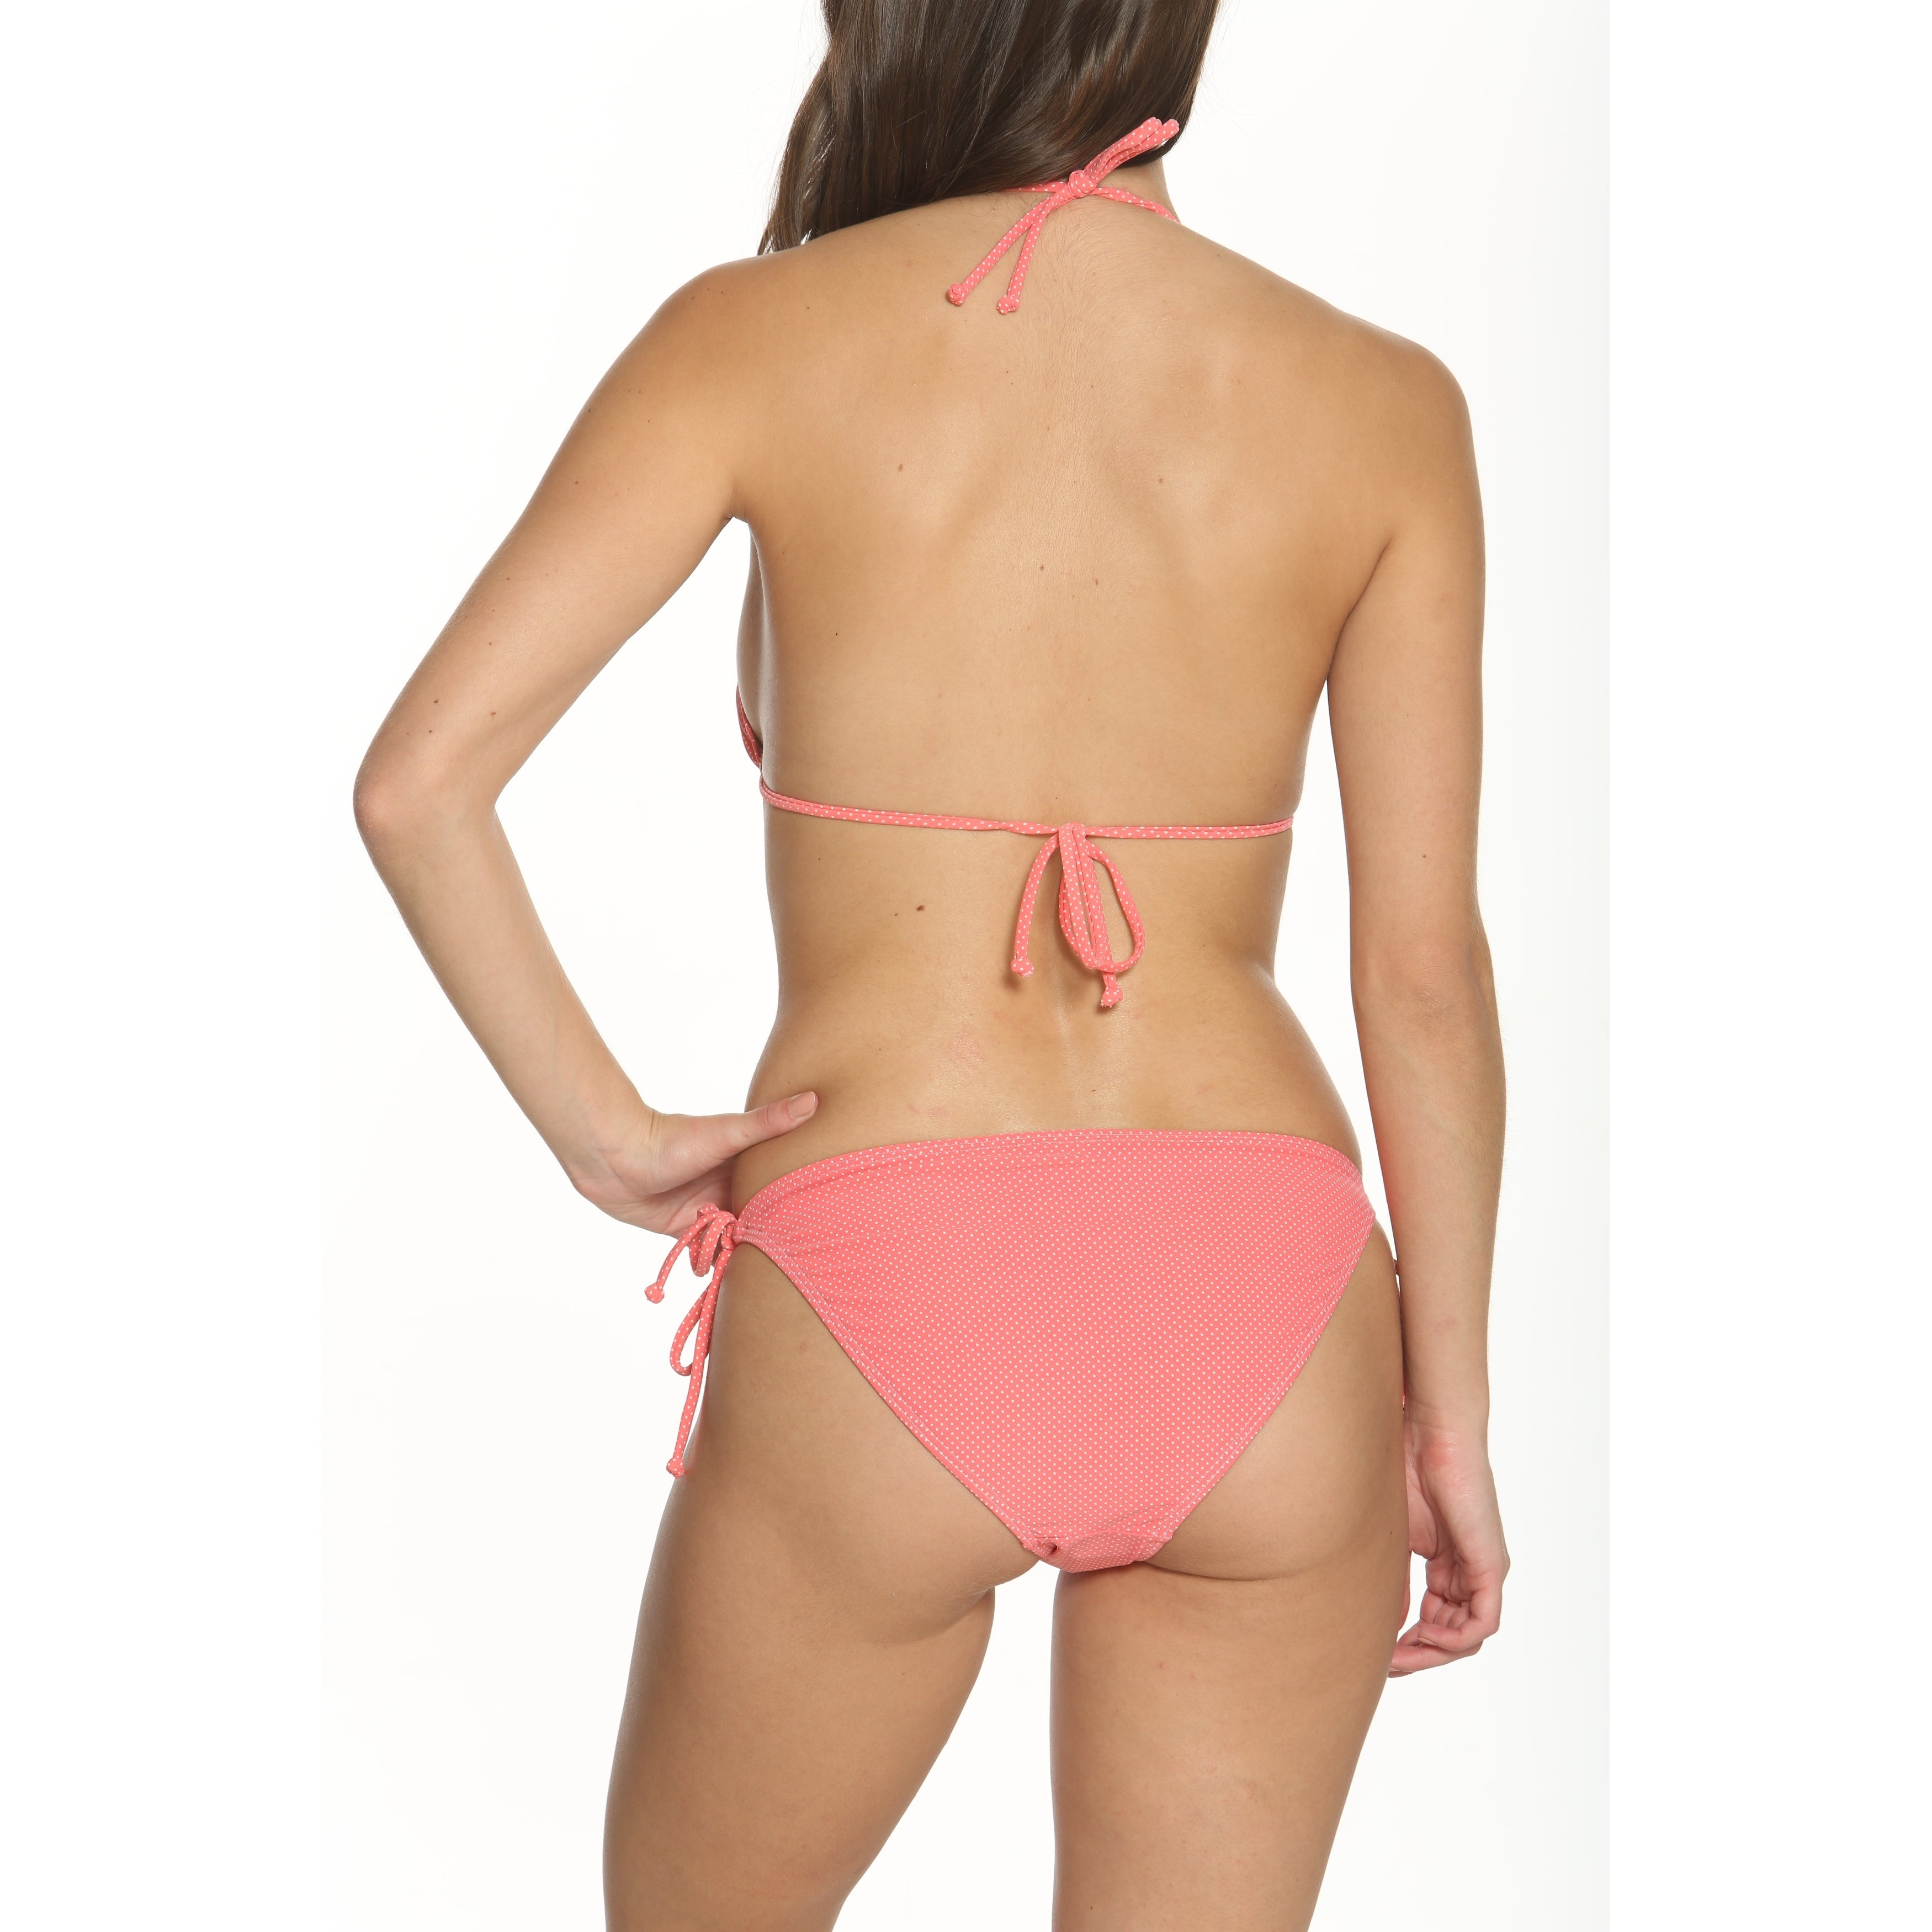 bfea98a09ade5 Shop Pixie Pier Triangle Top Bikini Set - Free Shipping On Orders Over $45  - Overstock - 20657632